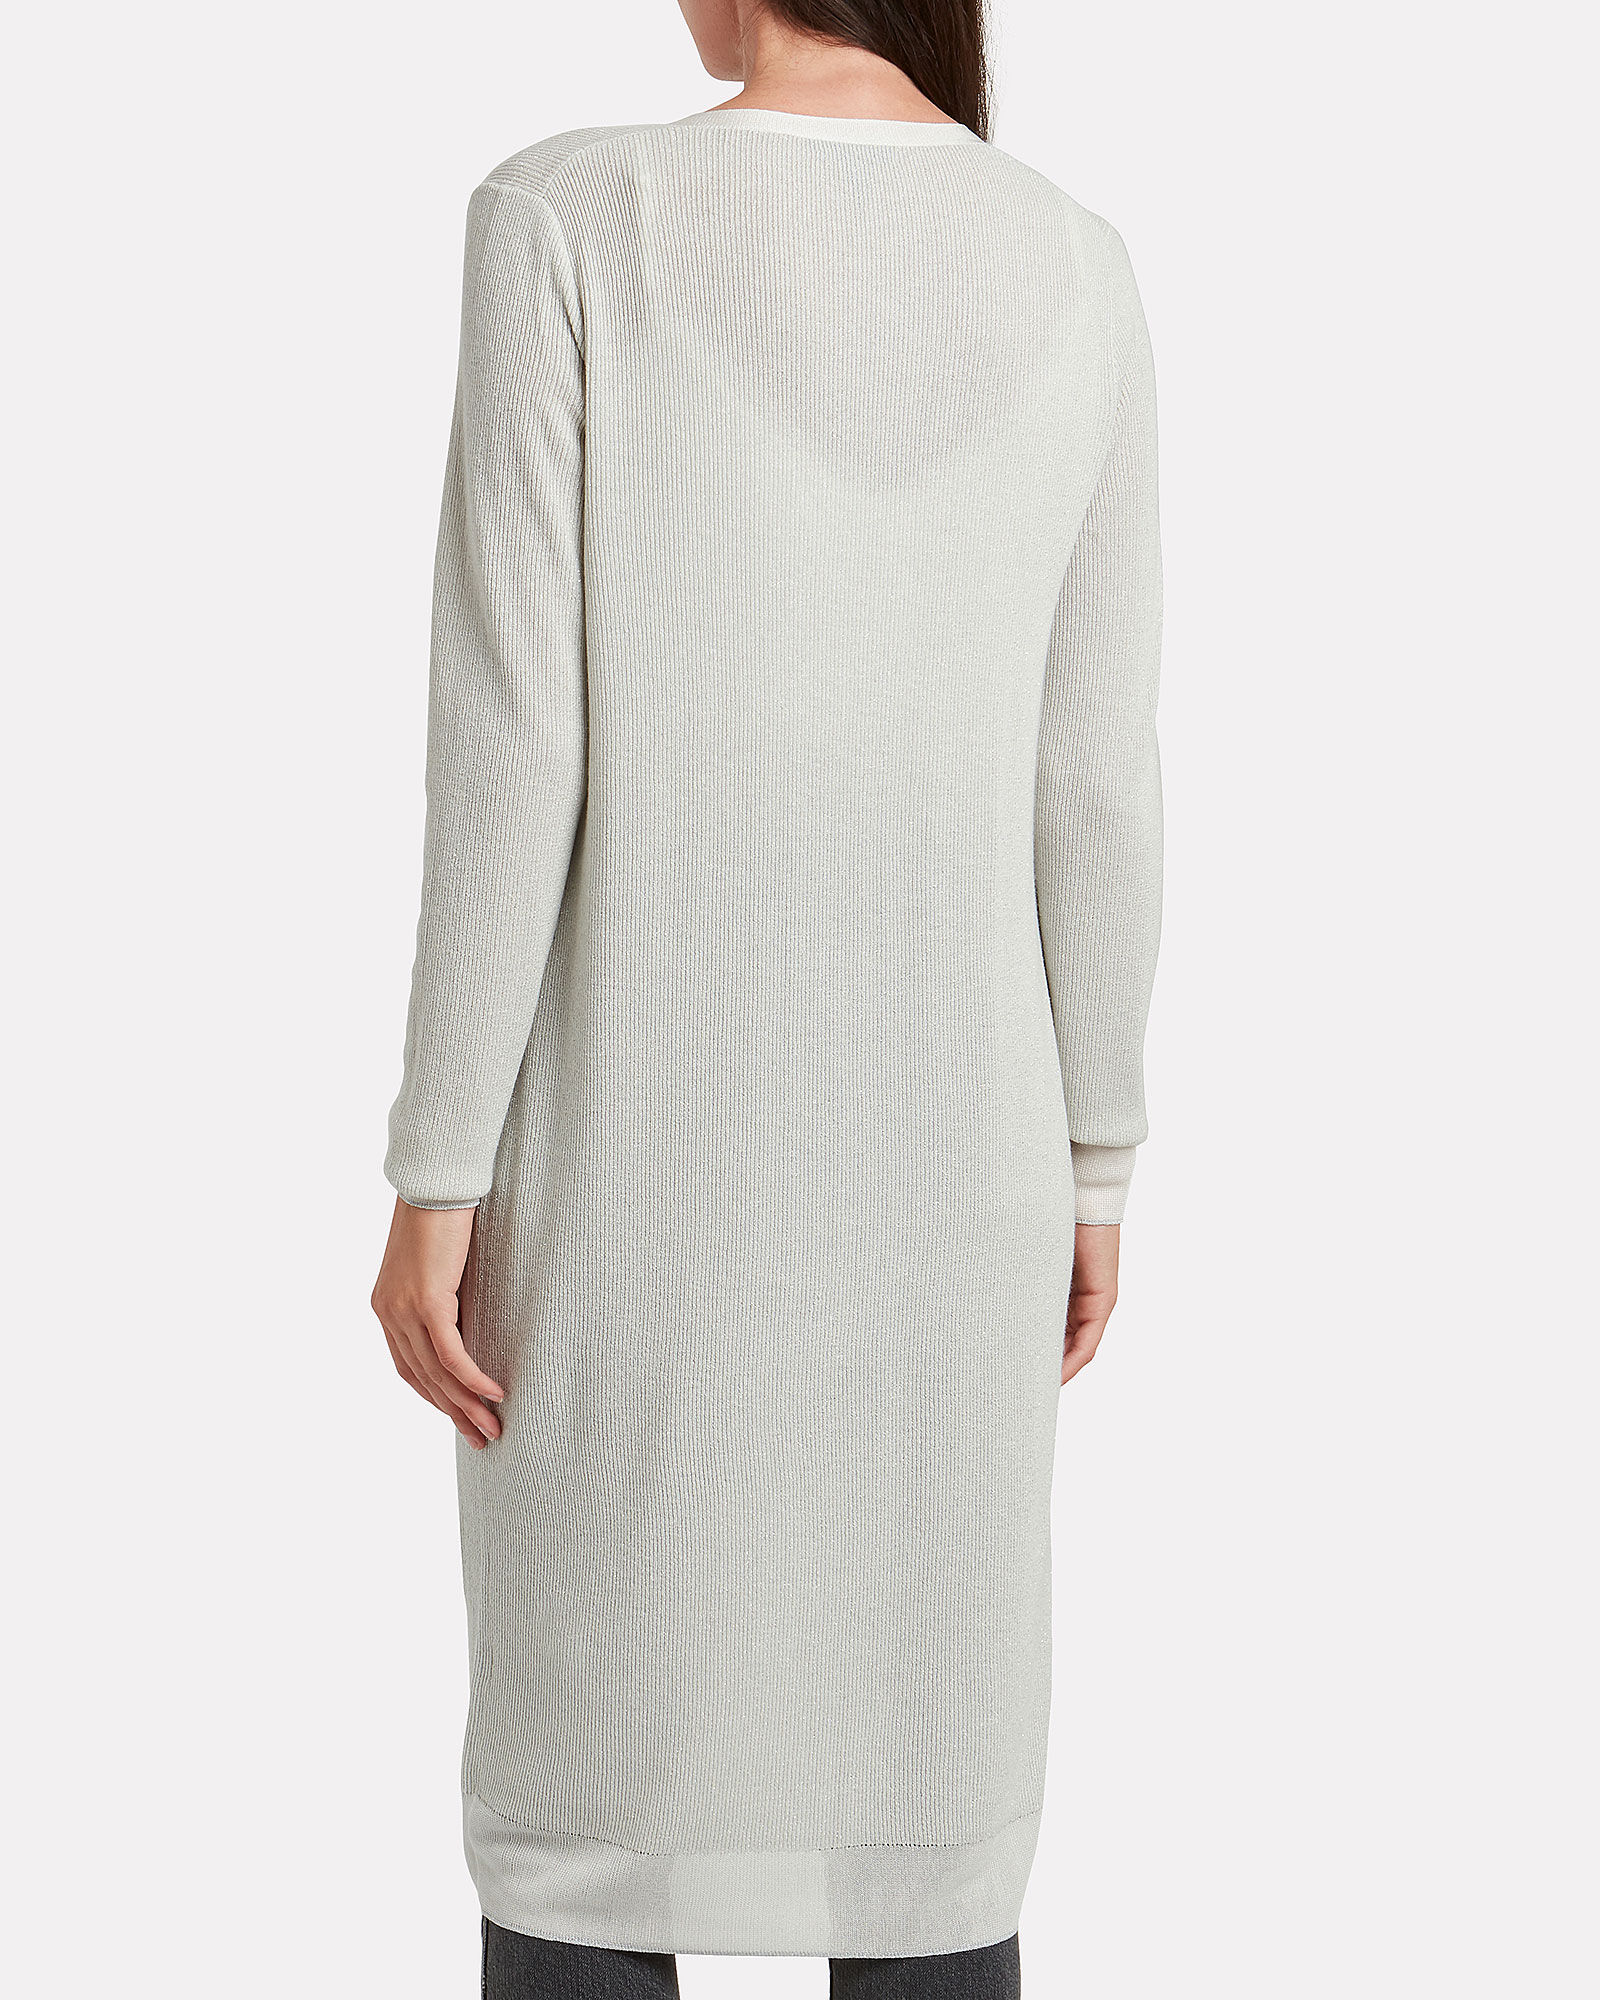 Rower Longline Cardigan, IVORY, hi-res